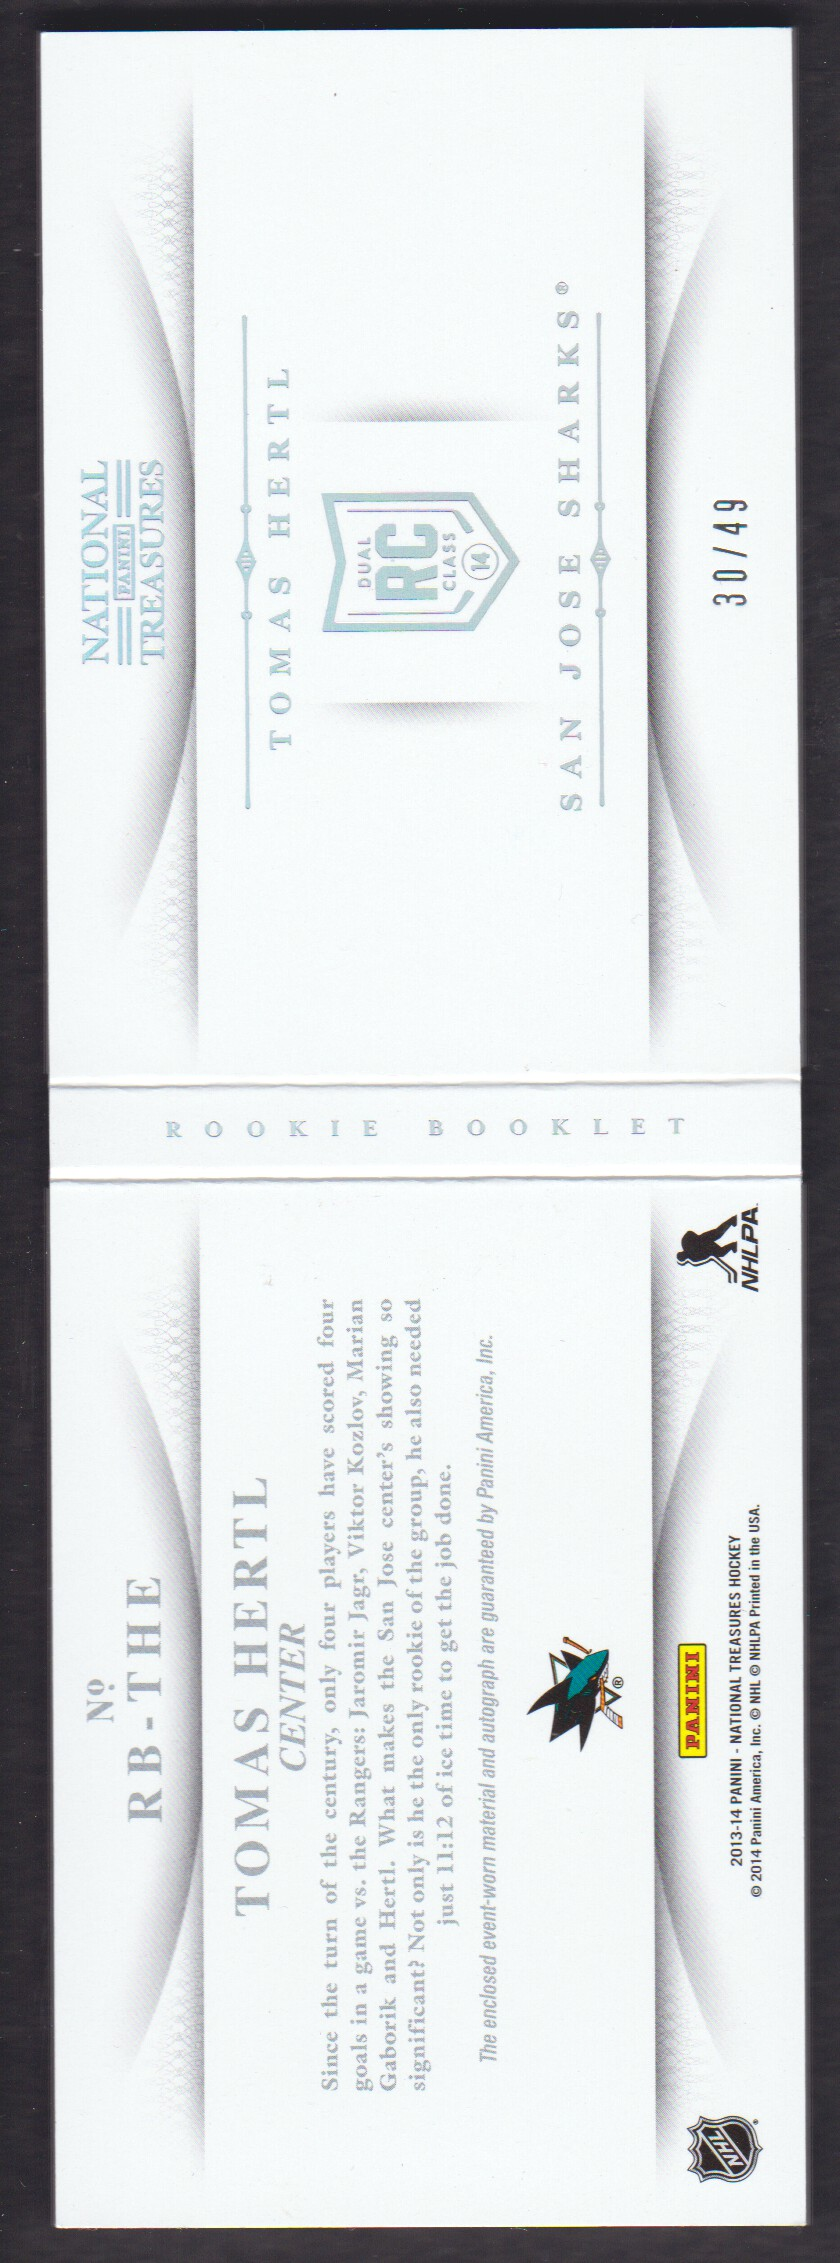 2013-14 Panini National Treasures Rookie Jumbo Jerseys Booklet Autographs Prime #3 Tomas Hertl back image